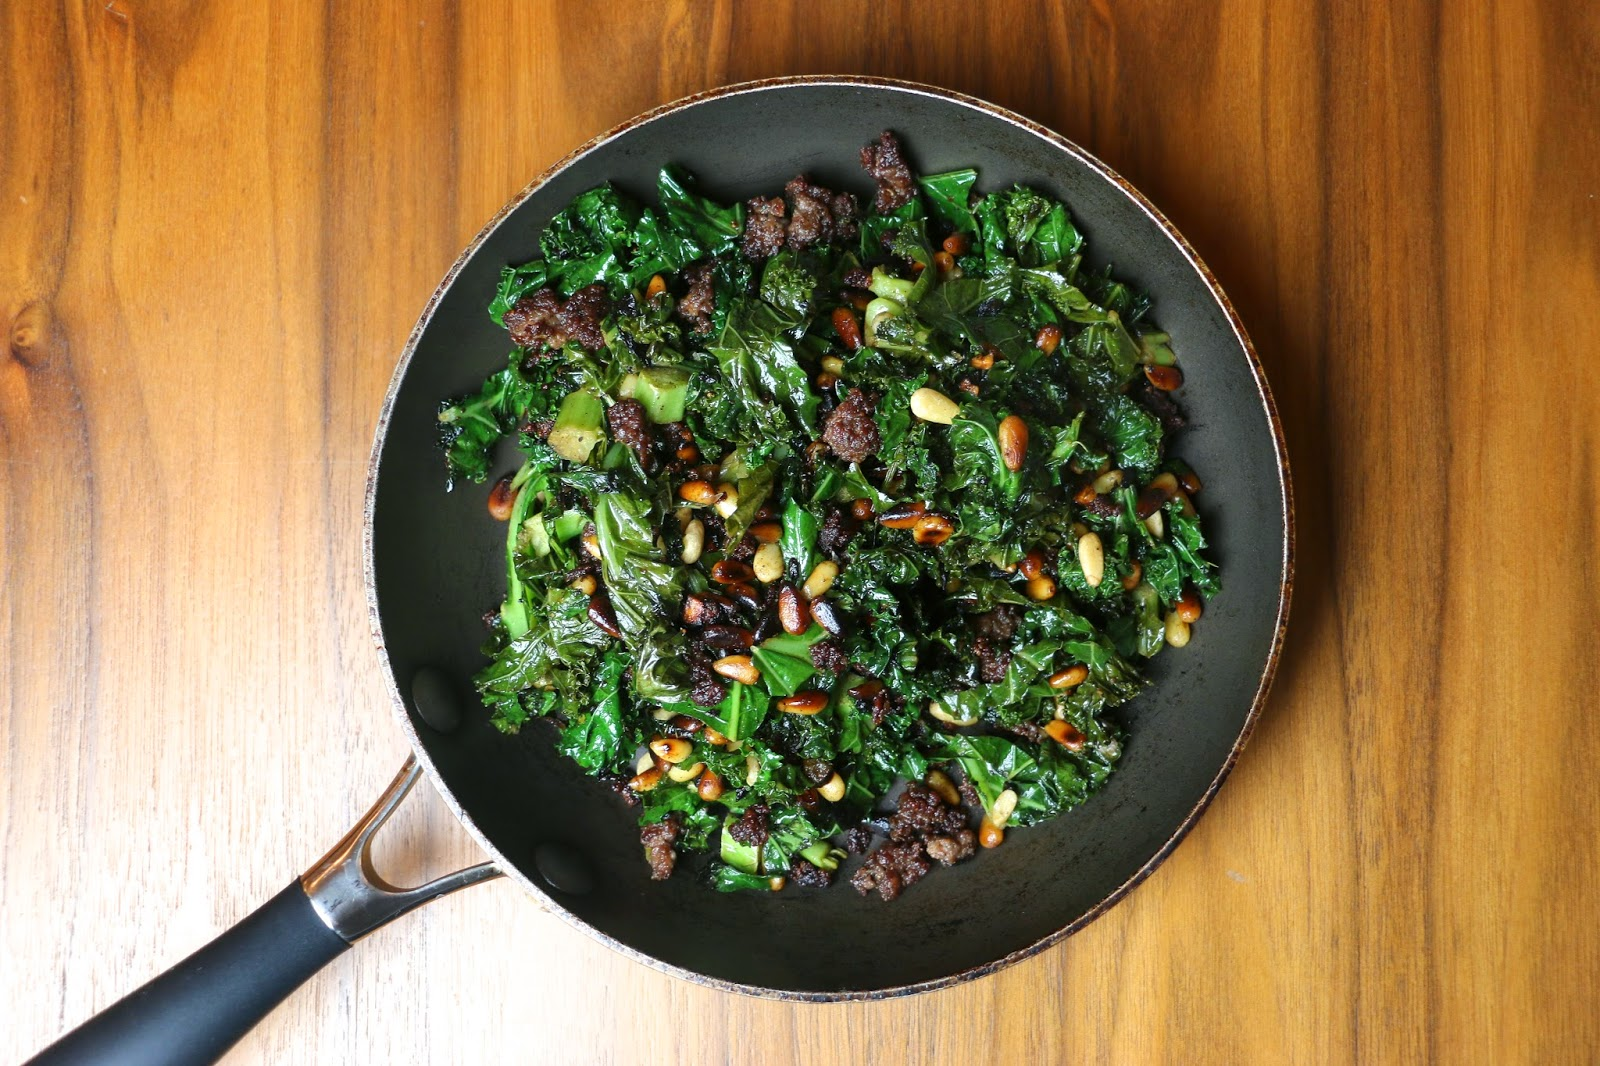 All Spice Minced Beef and Kale Hash